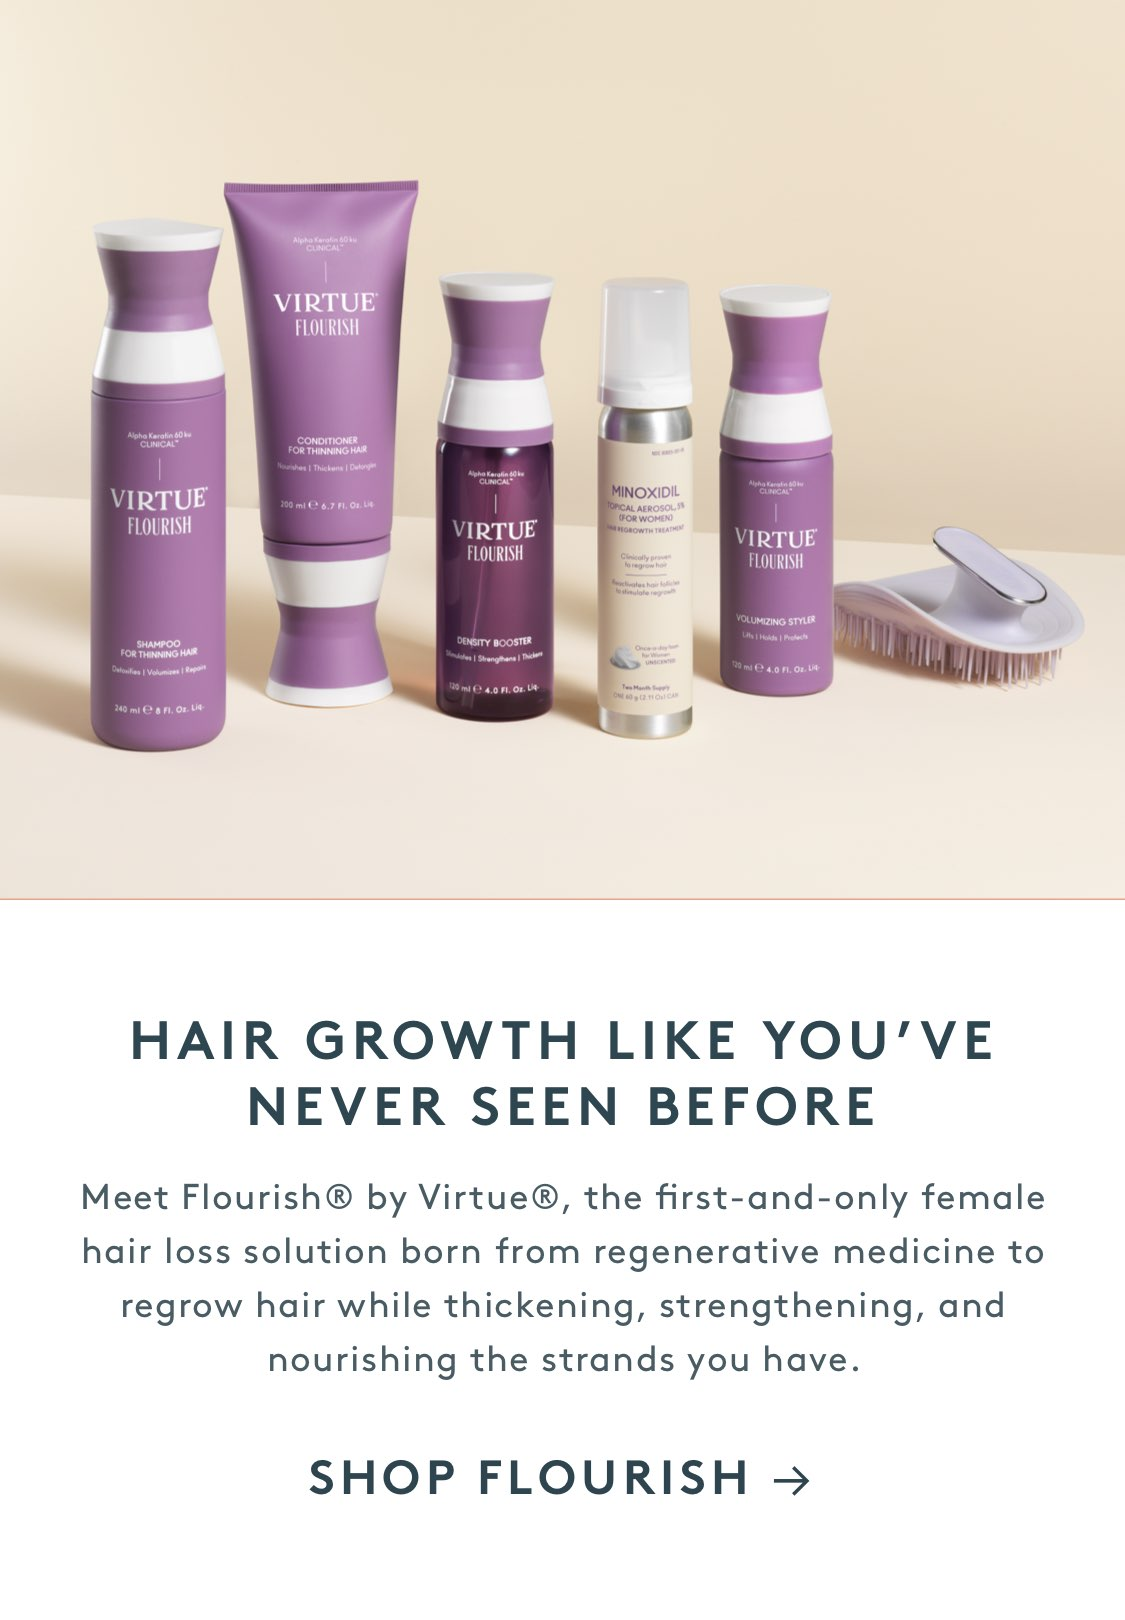 Hair Growth Like You've Never Seen Before